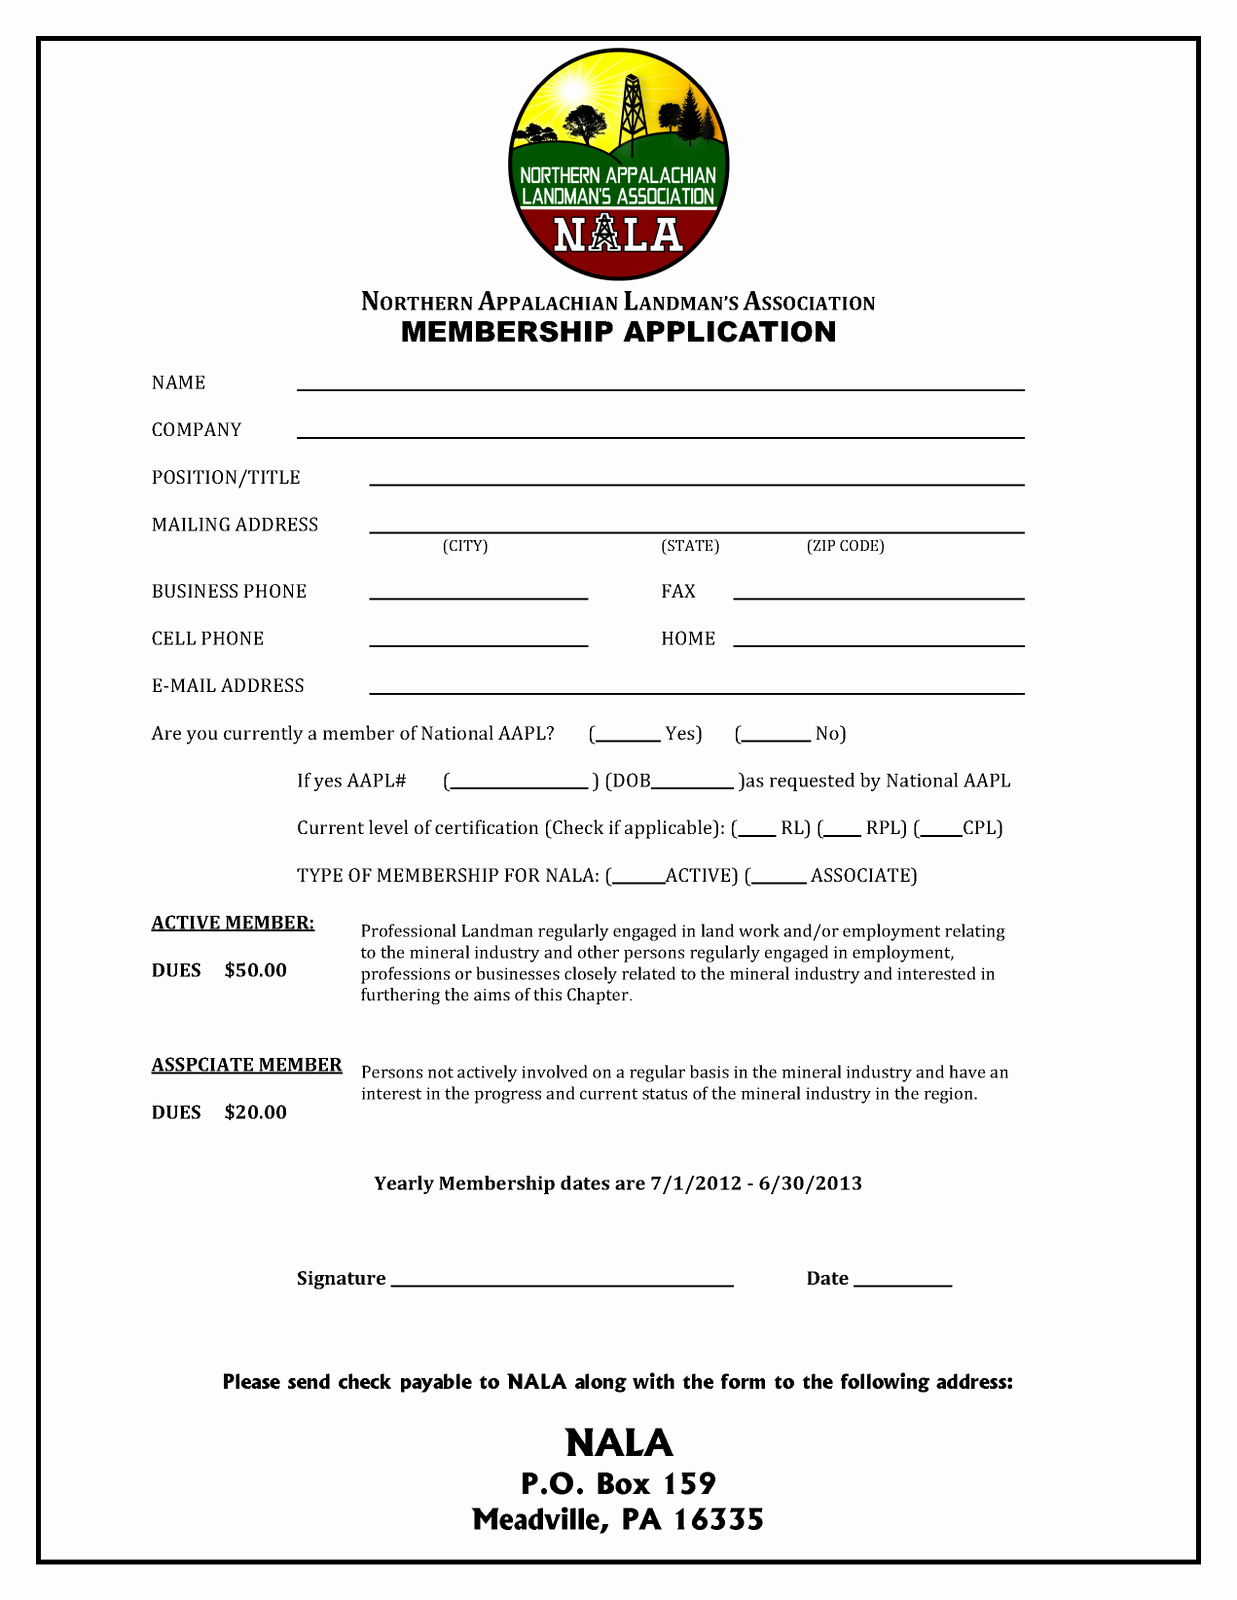 Free Membership Application Template Unique Application form Application form Template for Membership